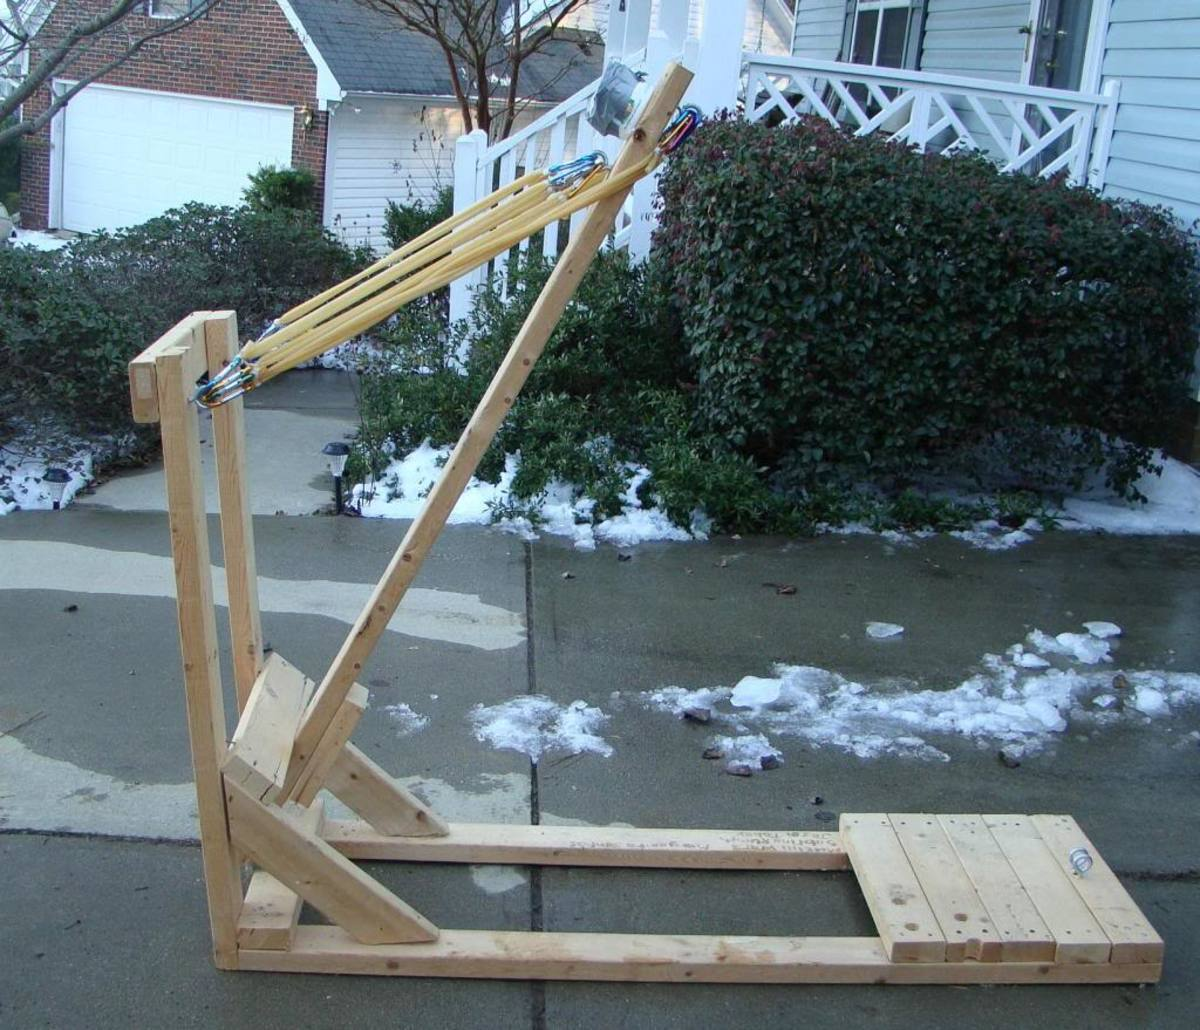 Large Homemade Catapult